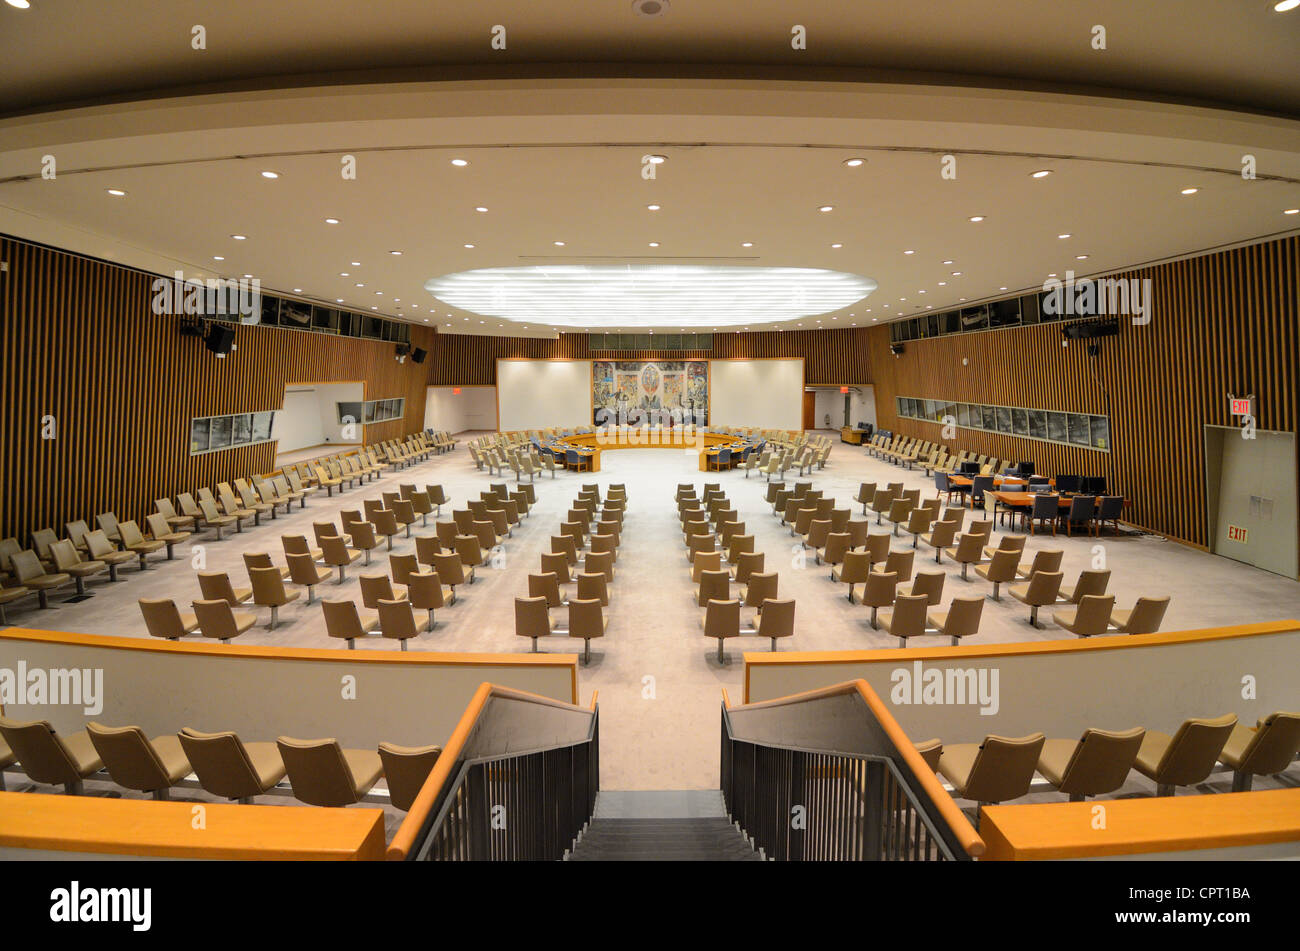 Security Council Chamber in the United Nations Headquarters in New York, New York. - Stock Image